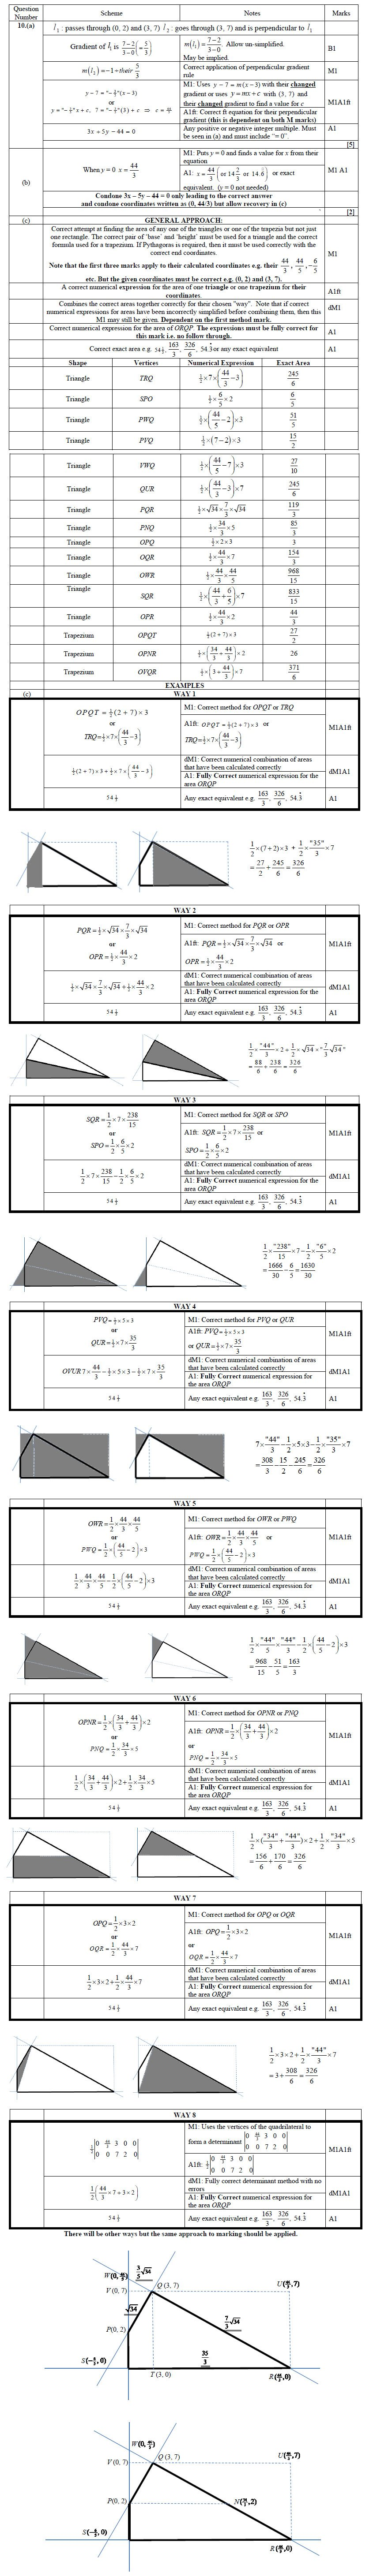 maths c1 papers Ocr as/a level gce mathematics qualification information including specification, exam materials, teaching resources, learning resources.